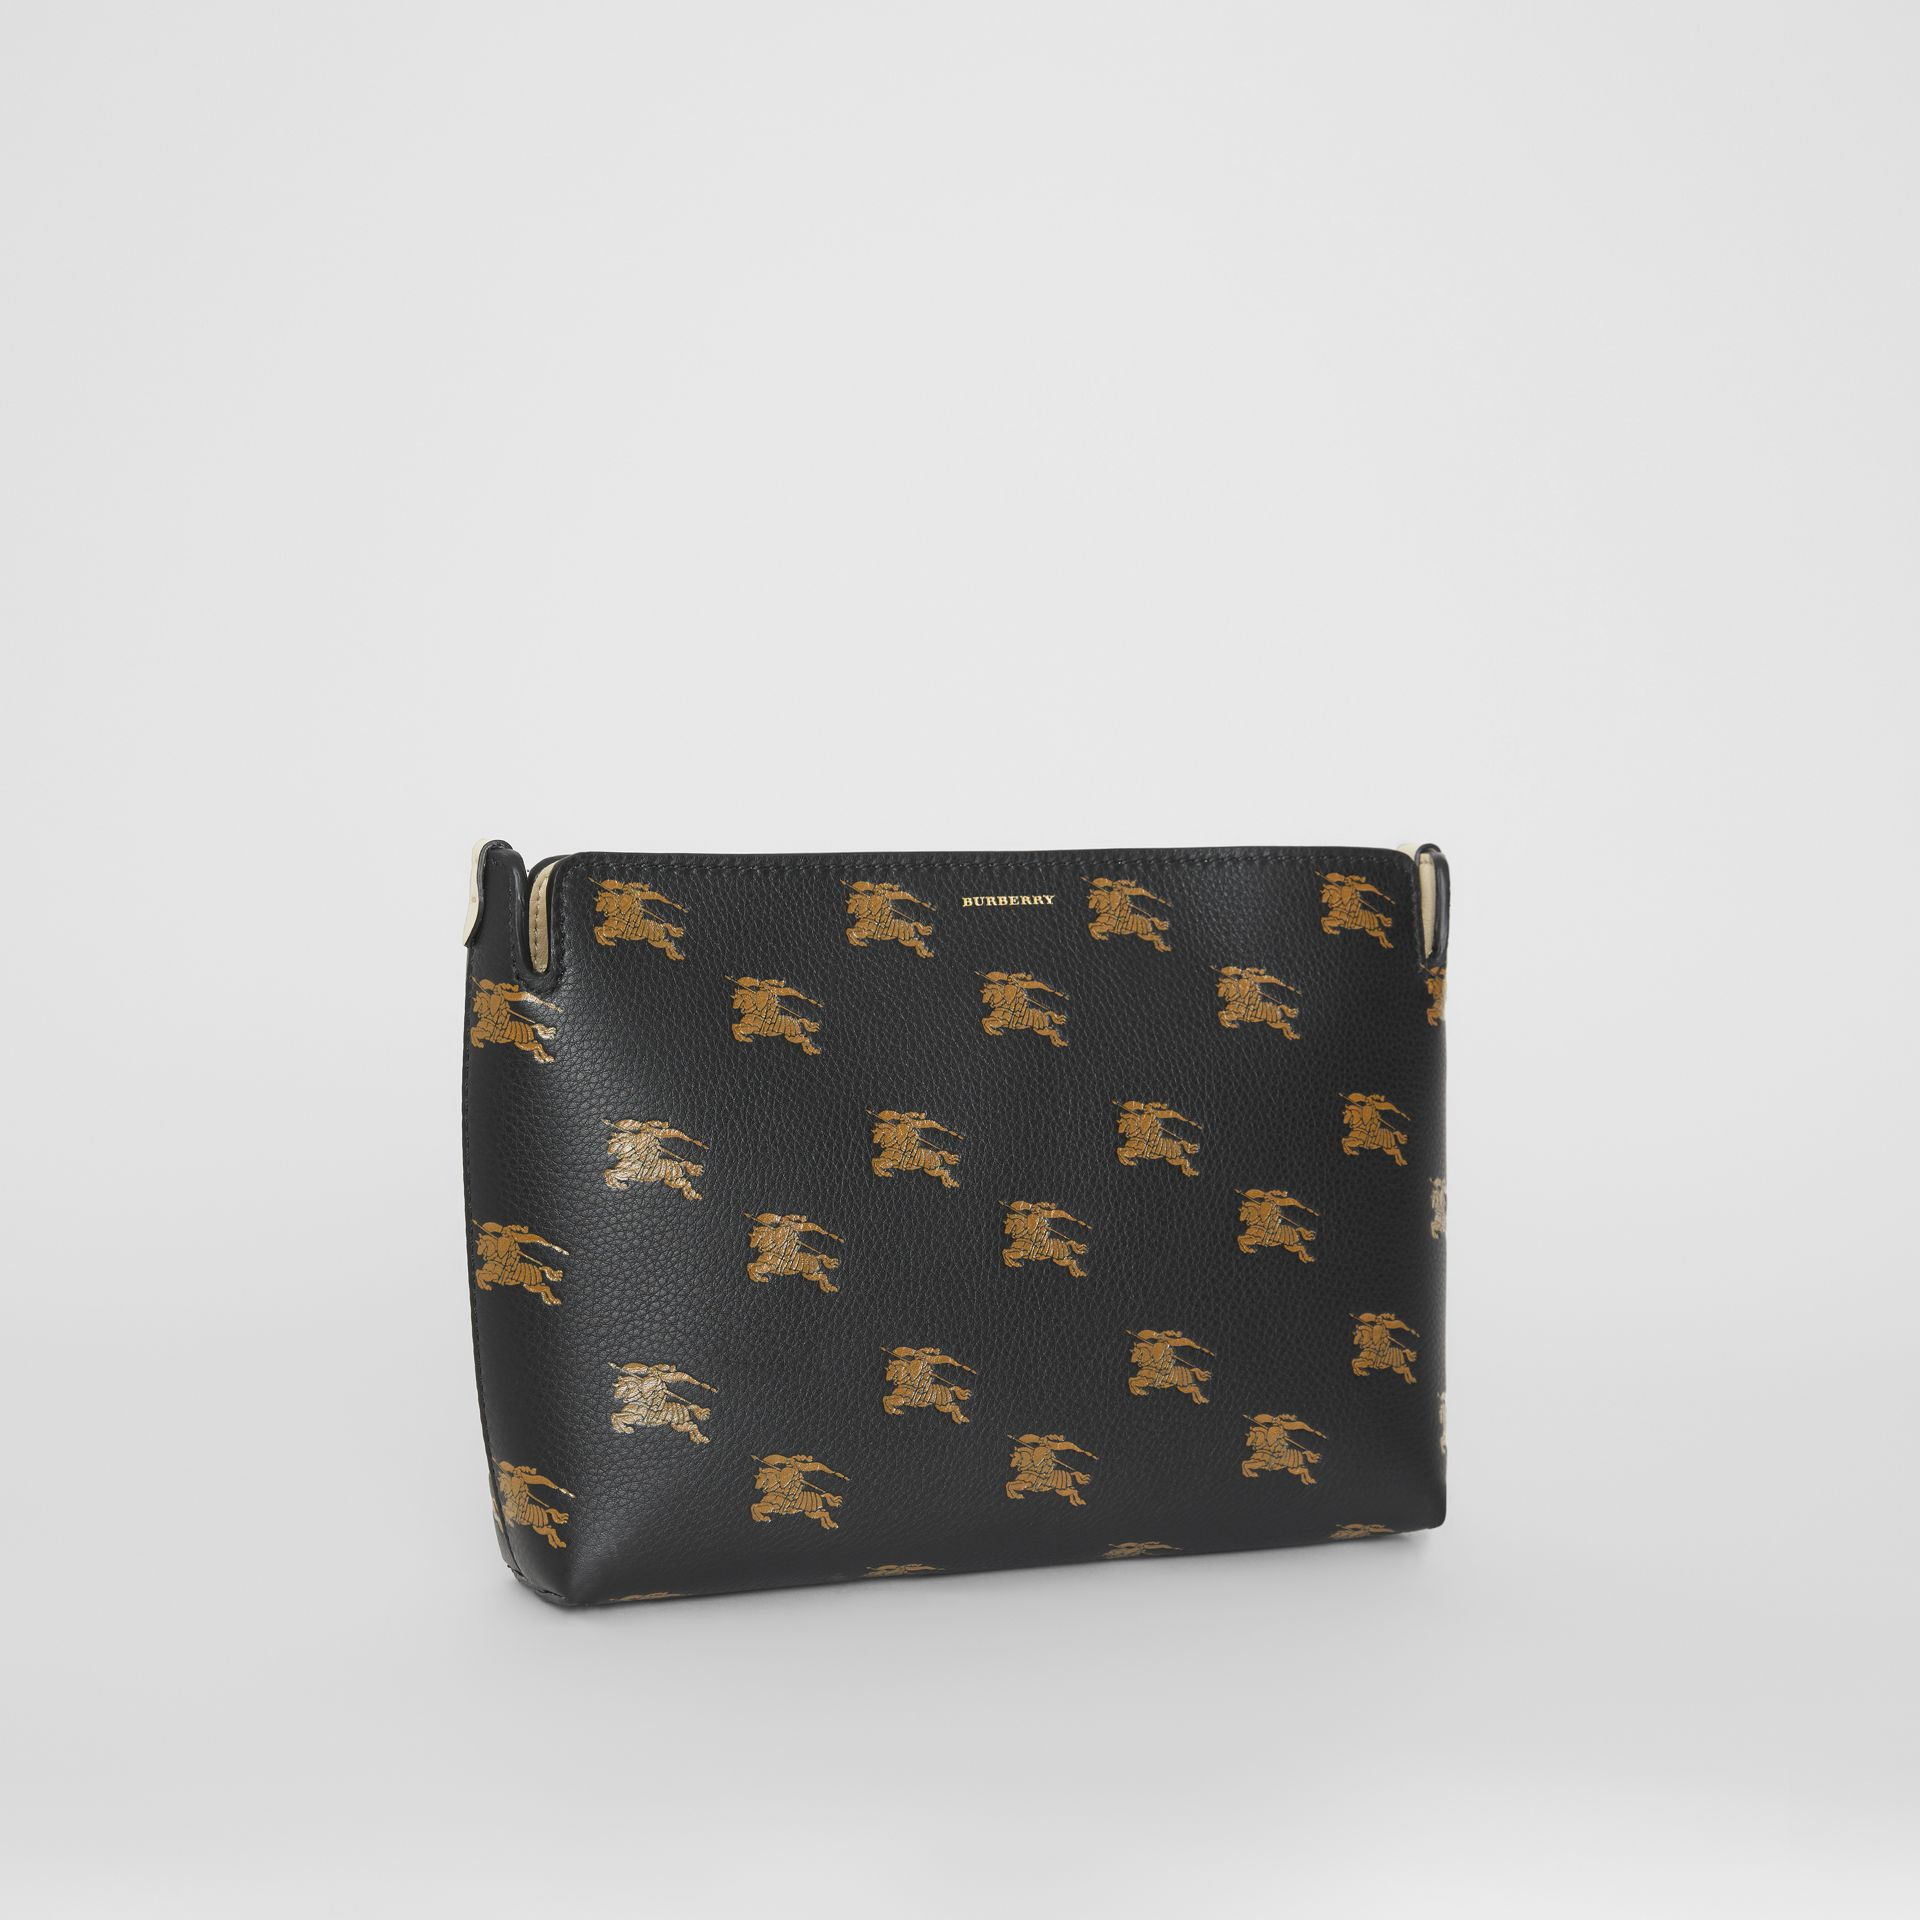 Medium Equestrian Knight Leather Clutch in Black - Women | Burberry Australia - gallery image 6